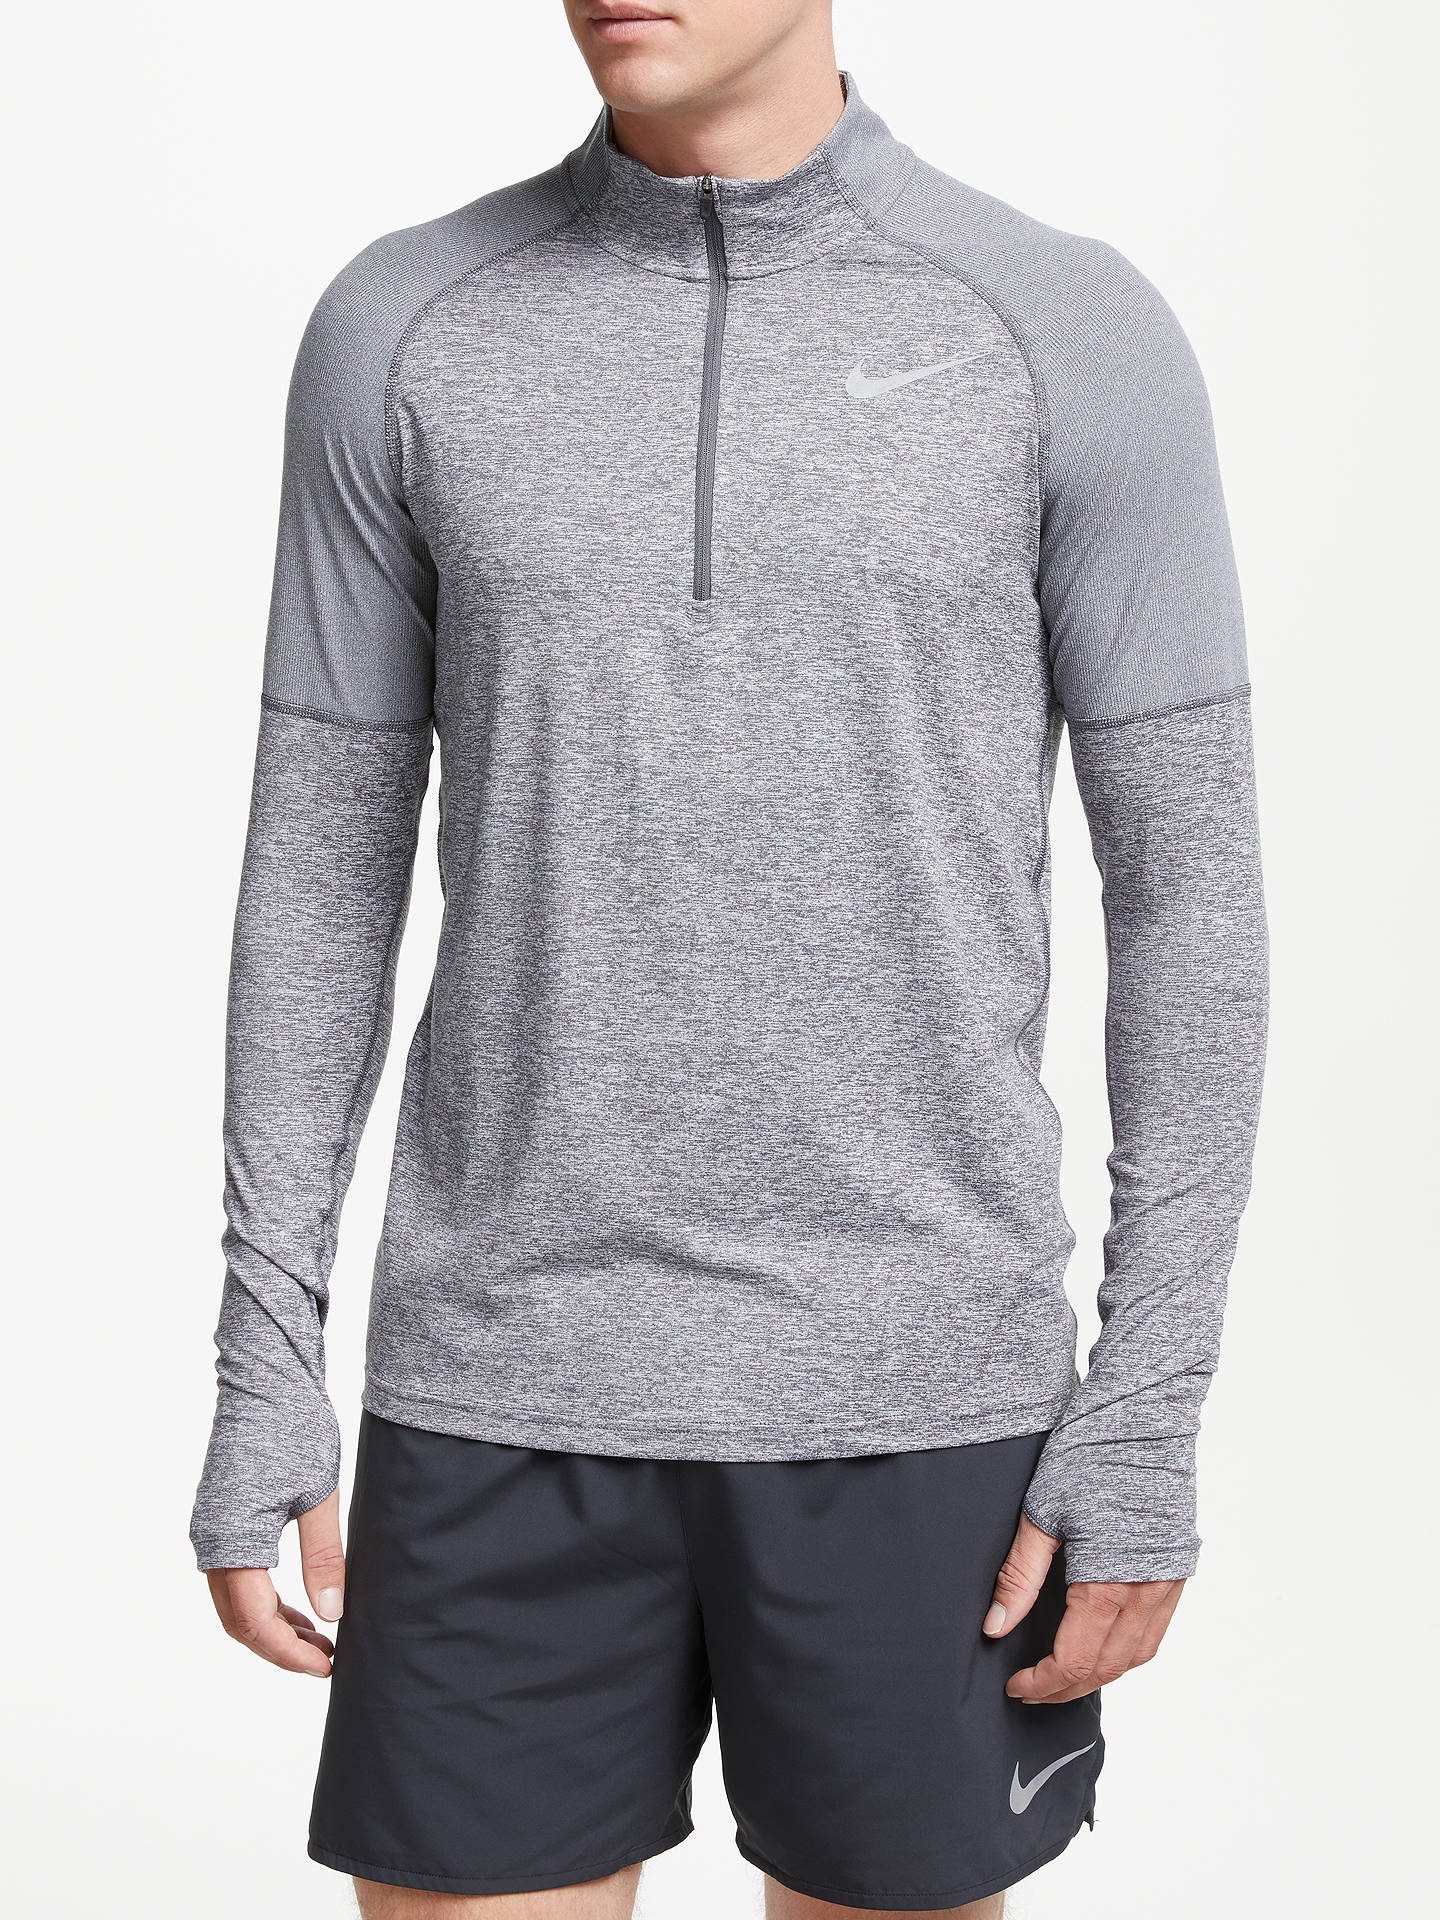 best value ef3cf 88521 Buy Nike Dry Element 1 2 Zip Running Top, Gunsmoke Atmosphere Grey, ...